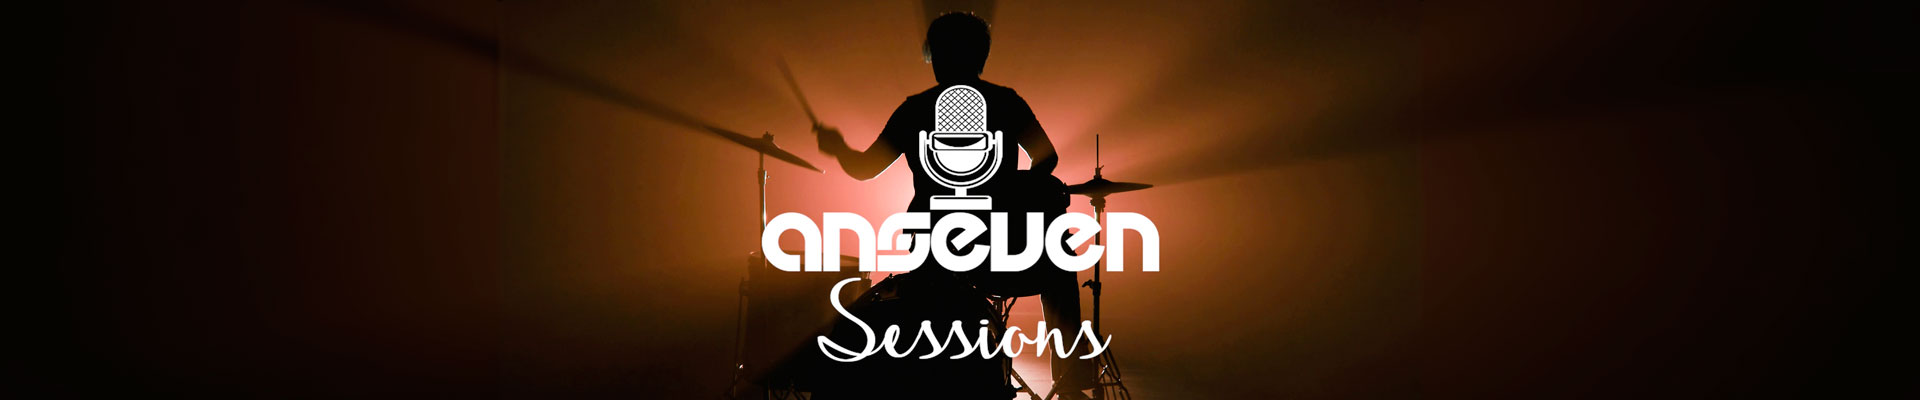 Anseven Sessions